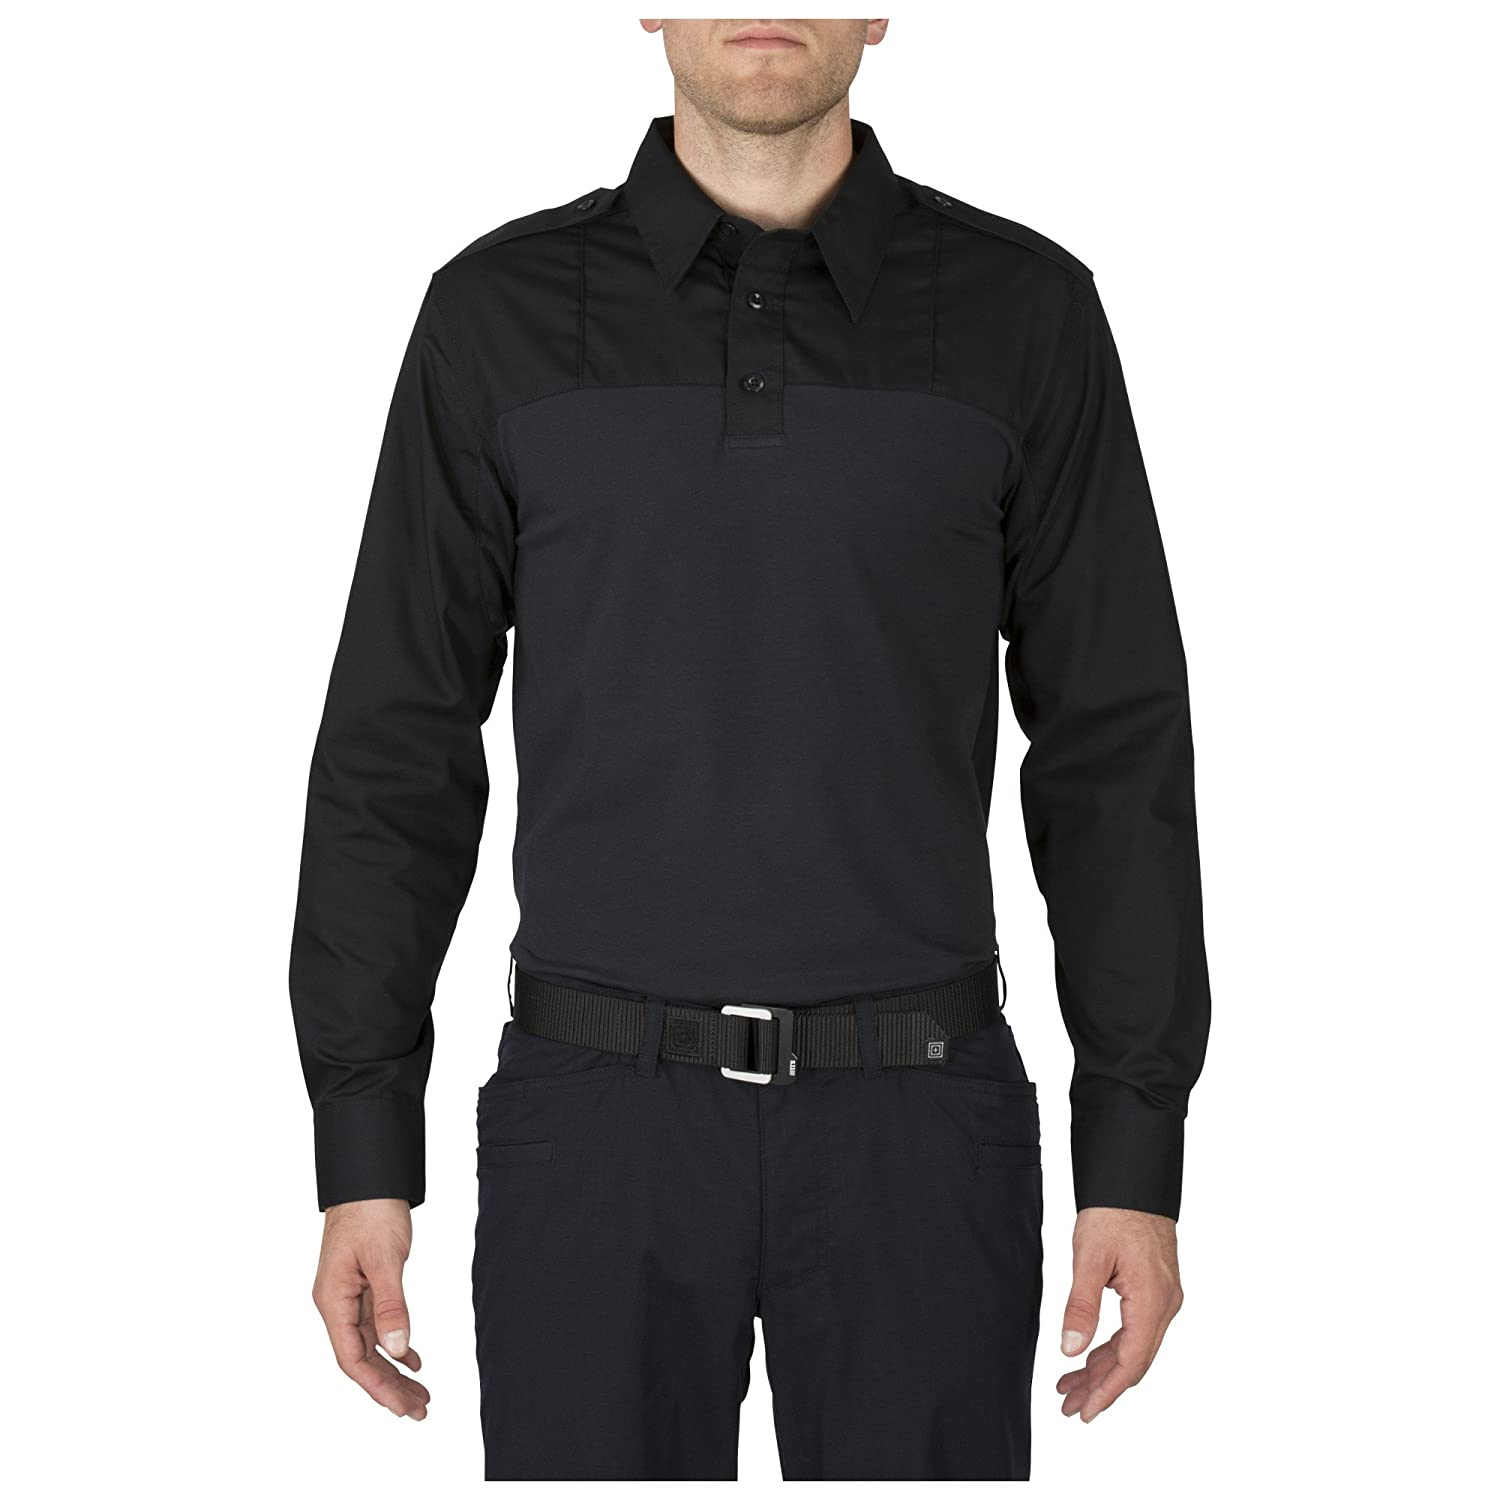 5.11 Herren Taclite Rapid PDU Long Sleeve Shirt